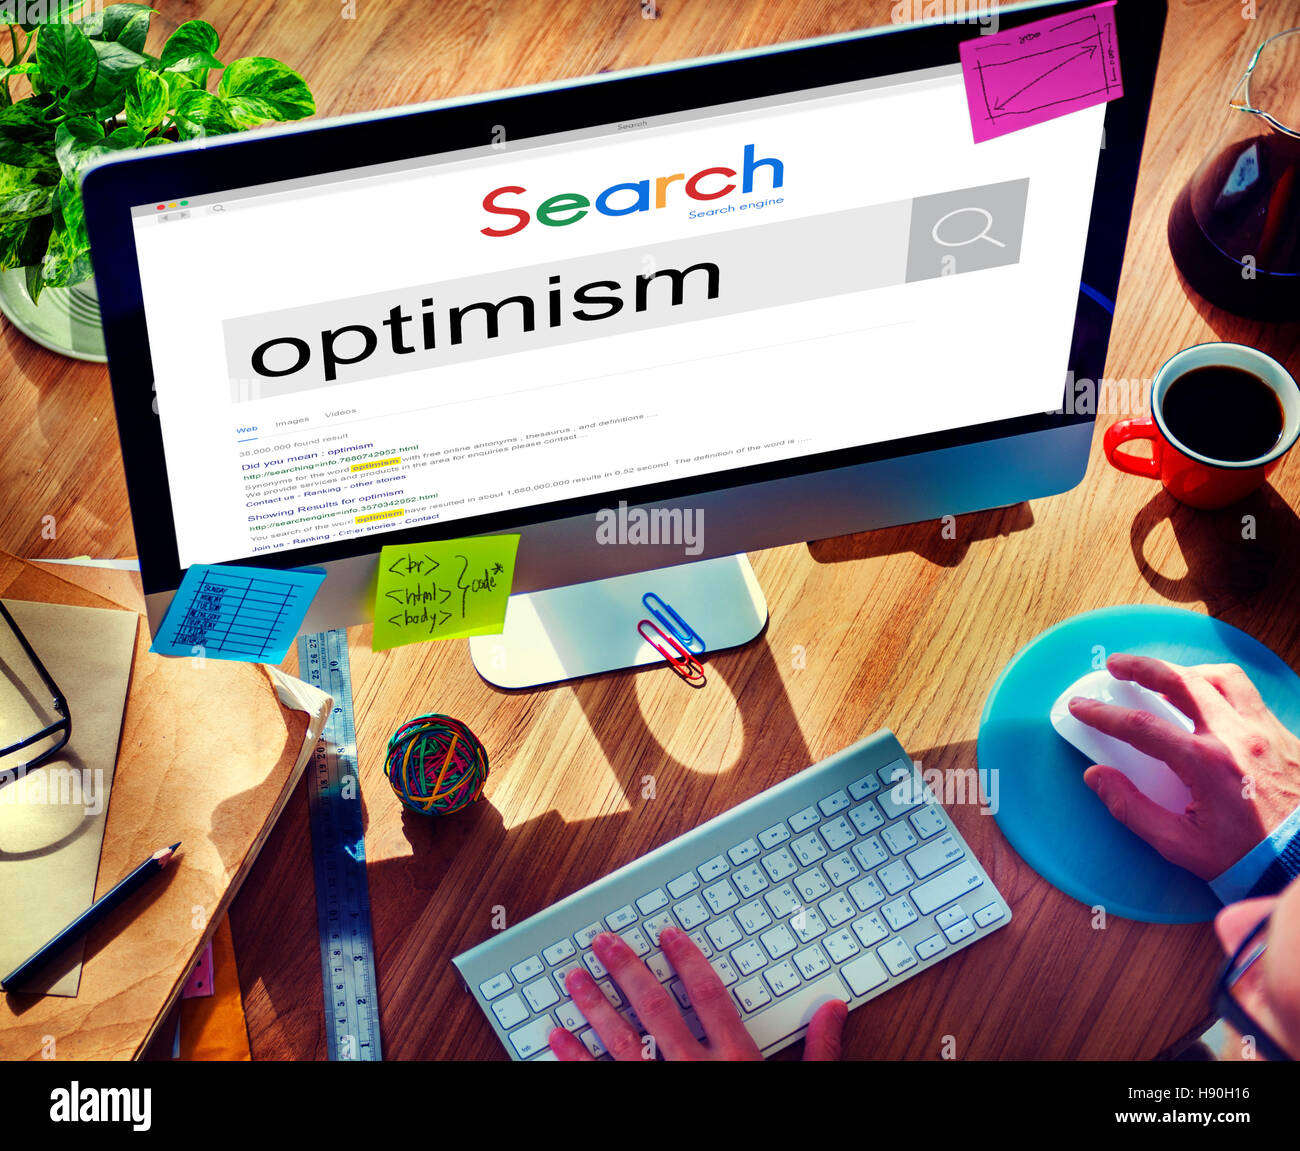 Optimism Positive Thinking Attitude Outlook Concept - Stock Image